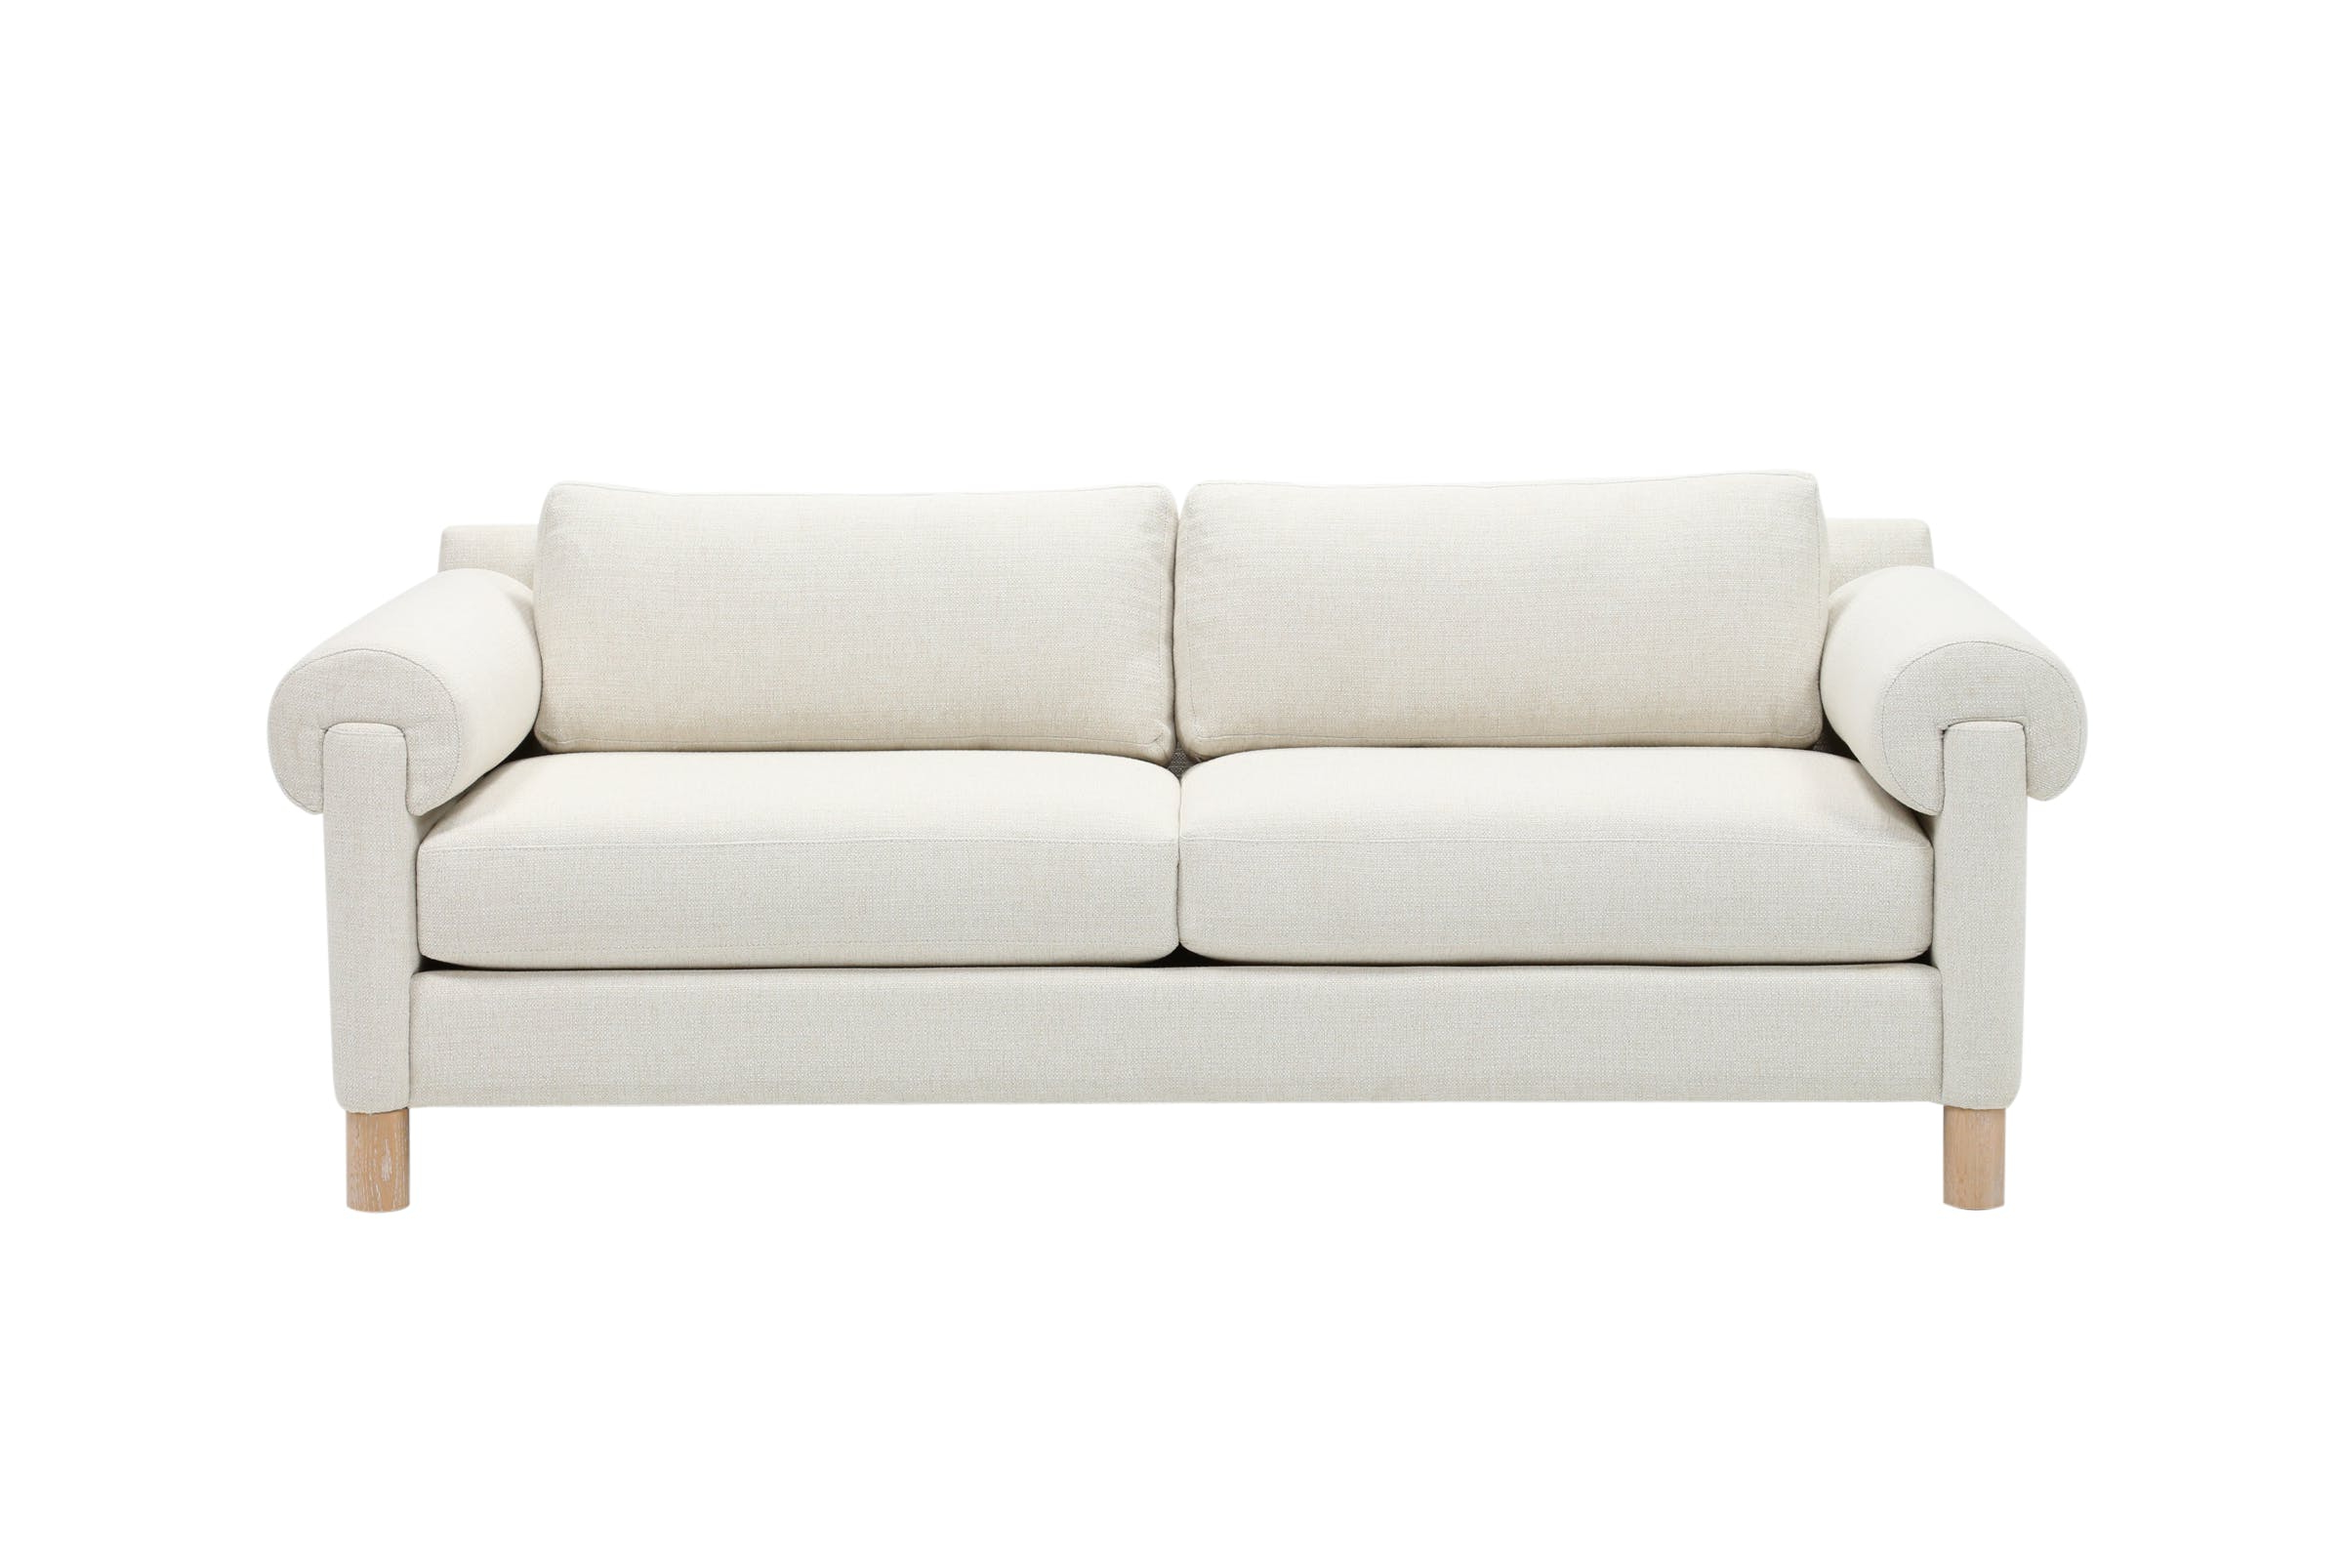 Matteo Arm Sofa Chairs By Nate Berkus And Jeremiah Brent Regarding Preferred Nate Berkus Just Launched A Home Collection With Hubby Jeremiah (View 8 of 20)